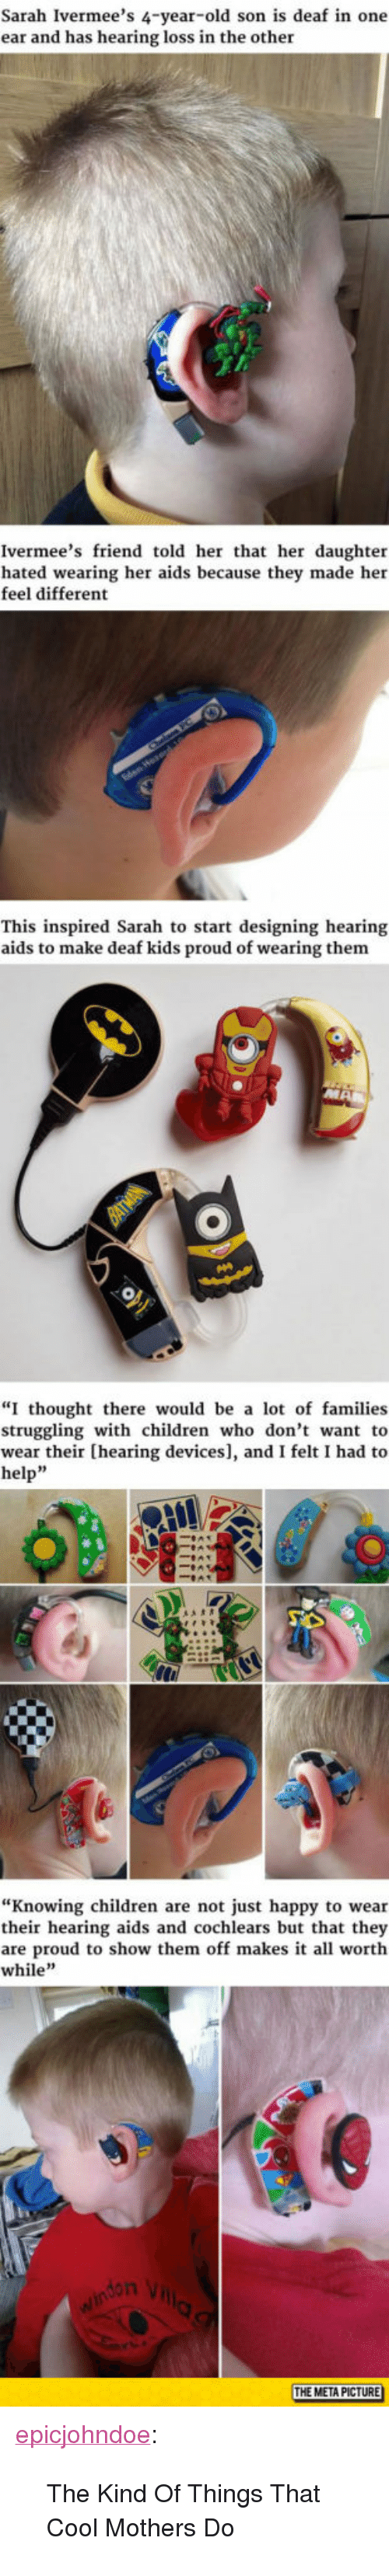 """Children, Tumblr, and Blog: Sarah Ivermee's 4-year-old son is deaf in one  ear and has hearing loss in the other  Ivermee's friend told her that her daughter  hated wearing her aids because they made her  feel different  This inspired Sarah to start designing hearing  aids to make deaf kids proud of wearing them  """"I thought there would be a lot of families  struggling with children who don't want to  wear their [hearing devices], and I felt I had to  help""""  """"Knowing children are not just happy to wear  their hearing aids and cochlears but that they  are proud to show them off makes it all worth  while  li  THE META PICTURE <p><a href=""""https://epicjohndoe.tumblr.com/post/173086092579/the-kind-of-things-that-cool-mothers-do"""" class=""""tumblr_blog"""">epicjohndoe</a>:</p>  <blockquote><p>The Kind Of Things That Cool Mothers Do</p></blockquote>"""